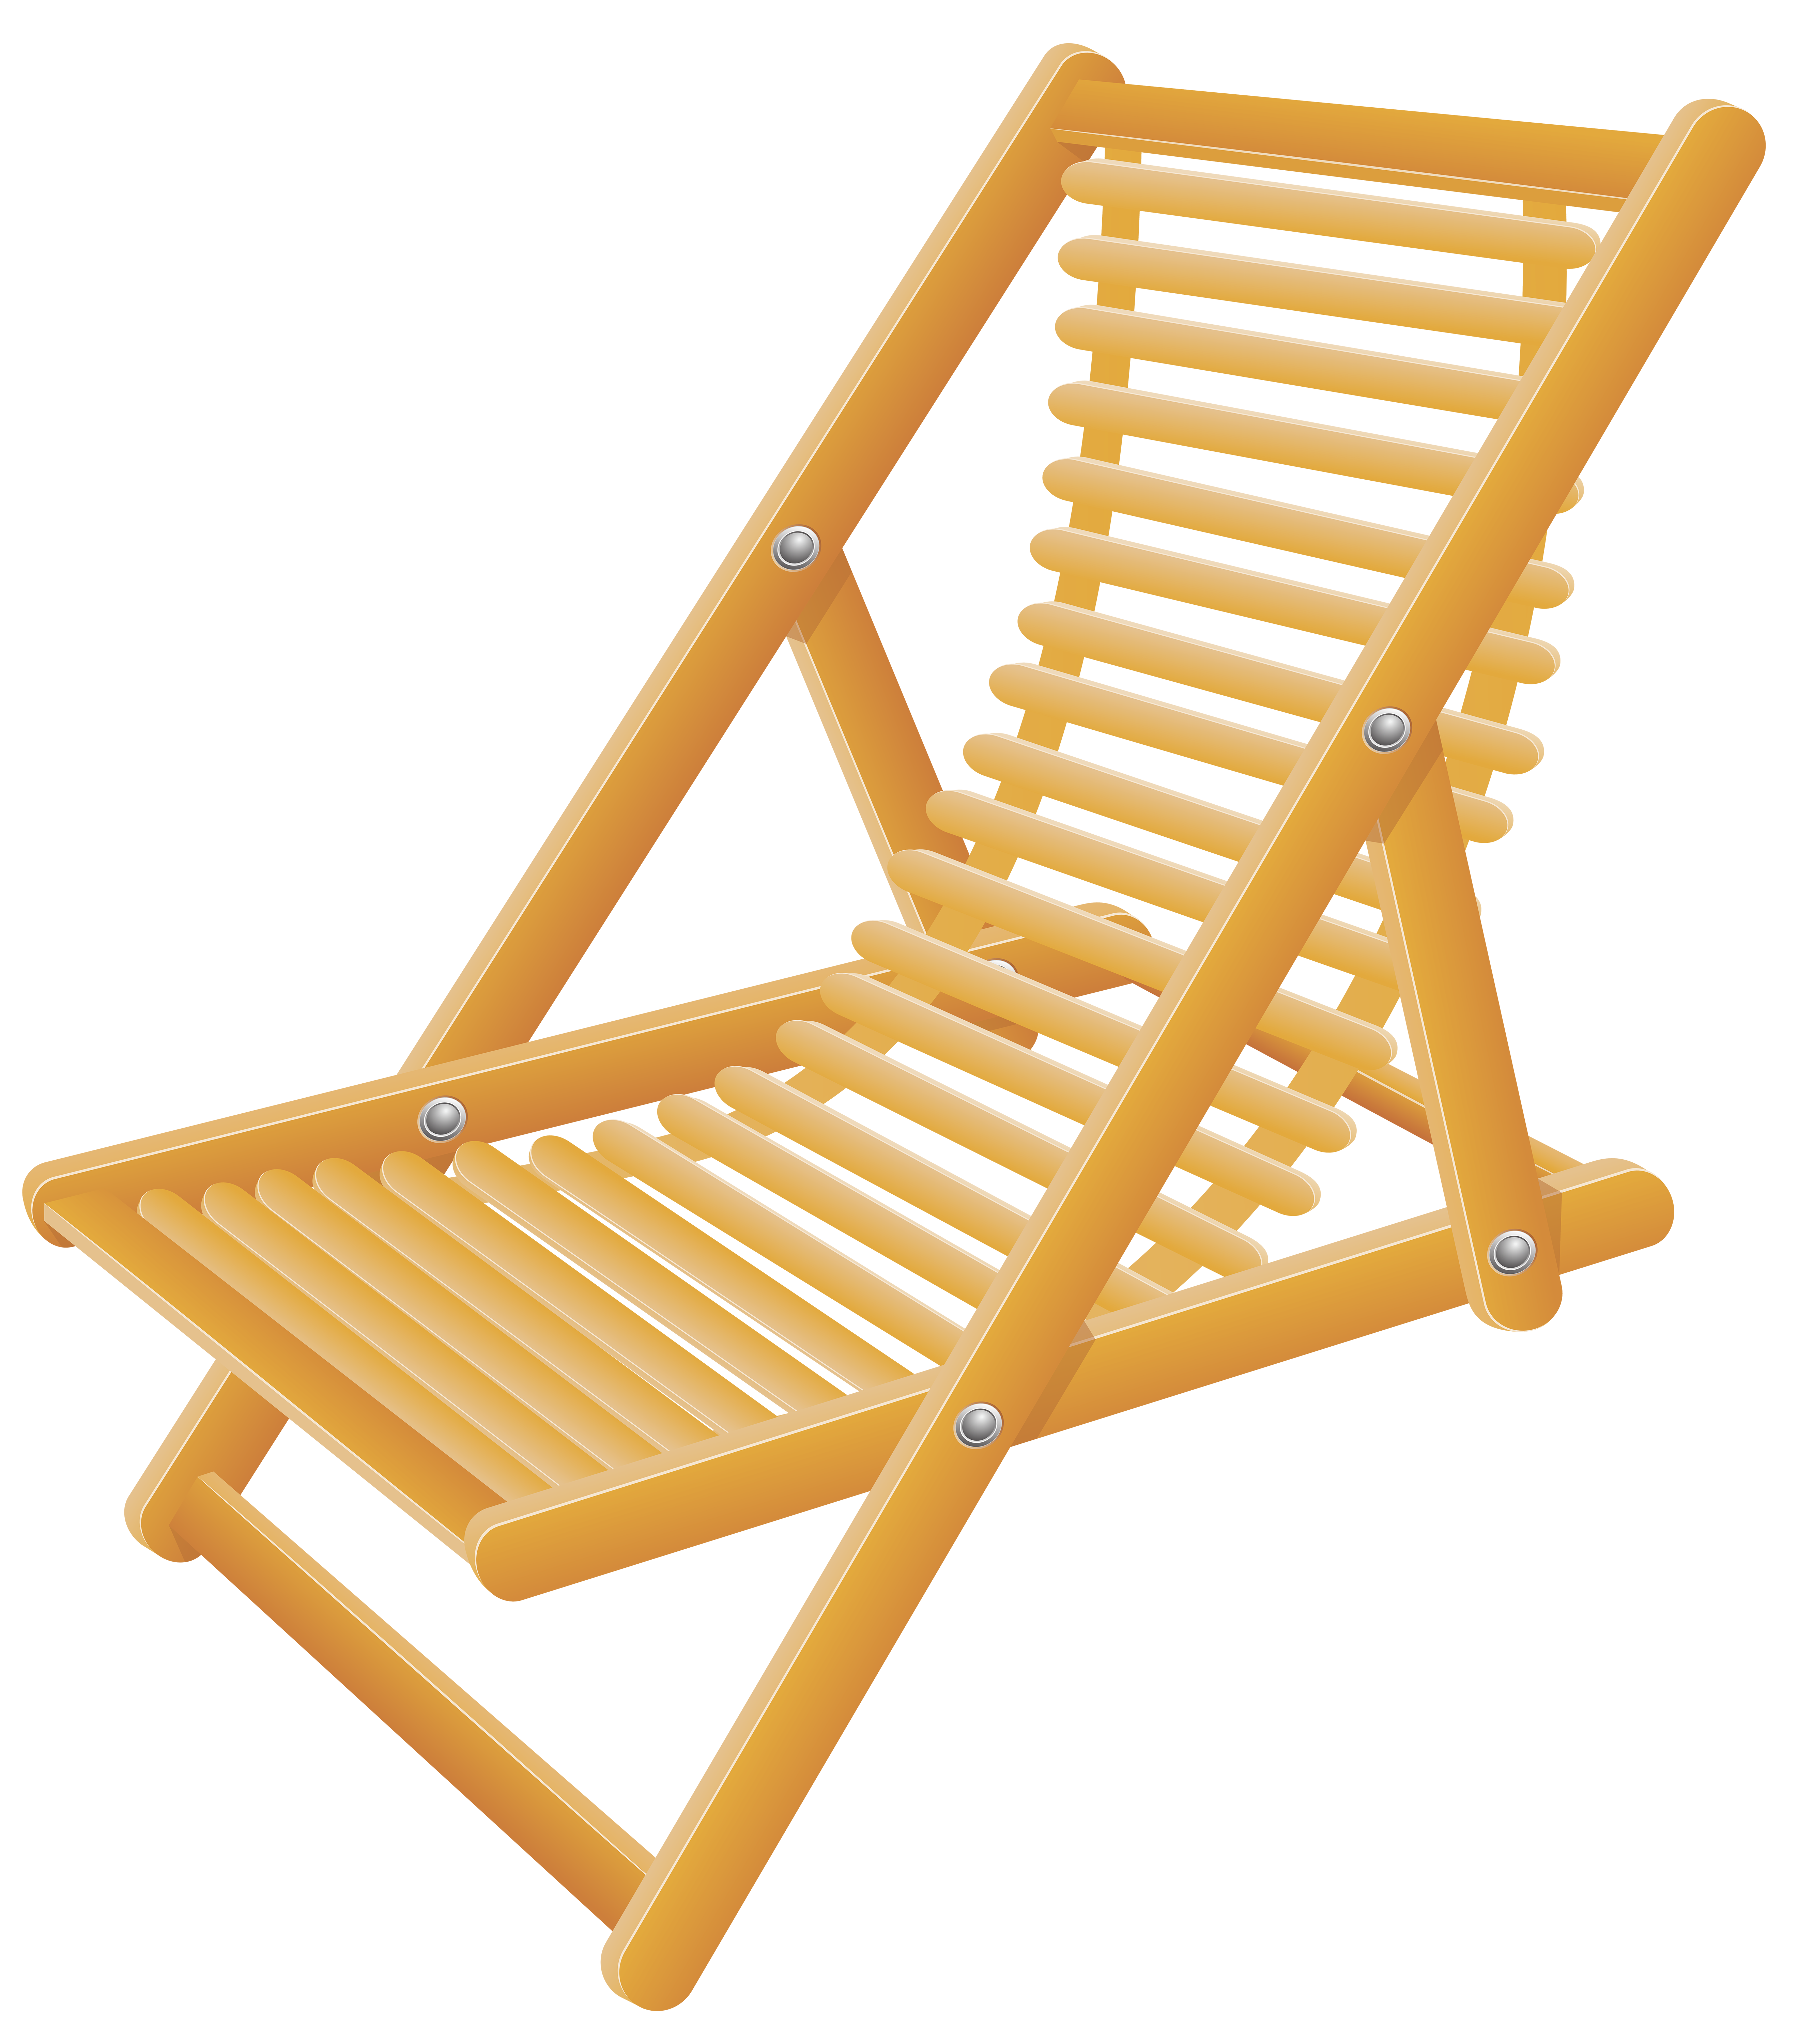 Wooden beach transparent png. Clipart chair illustration